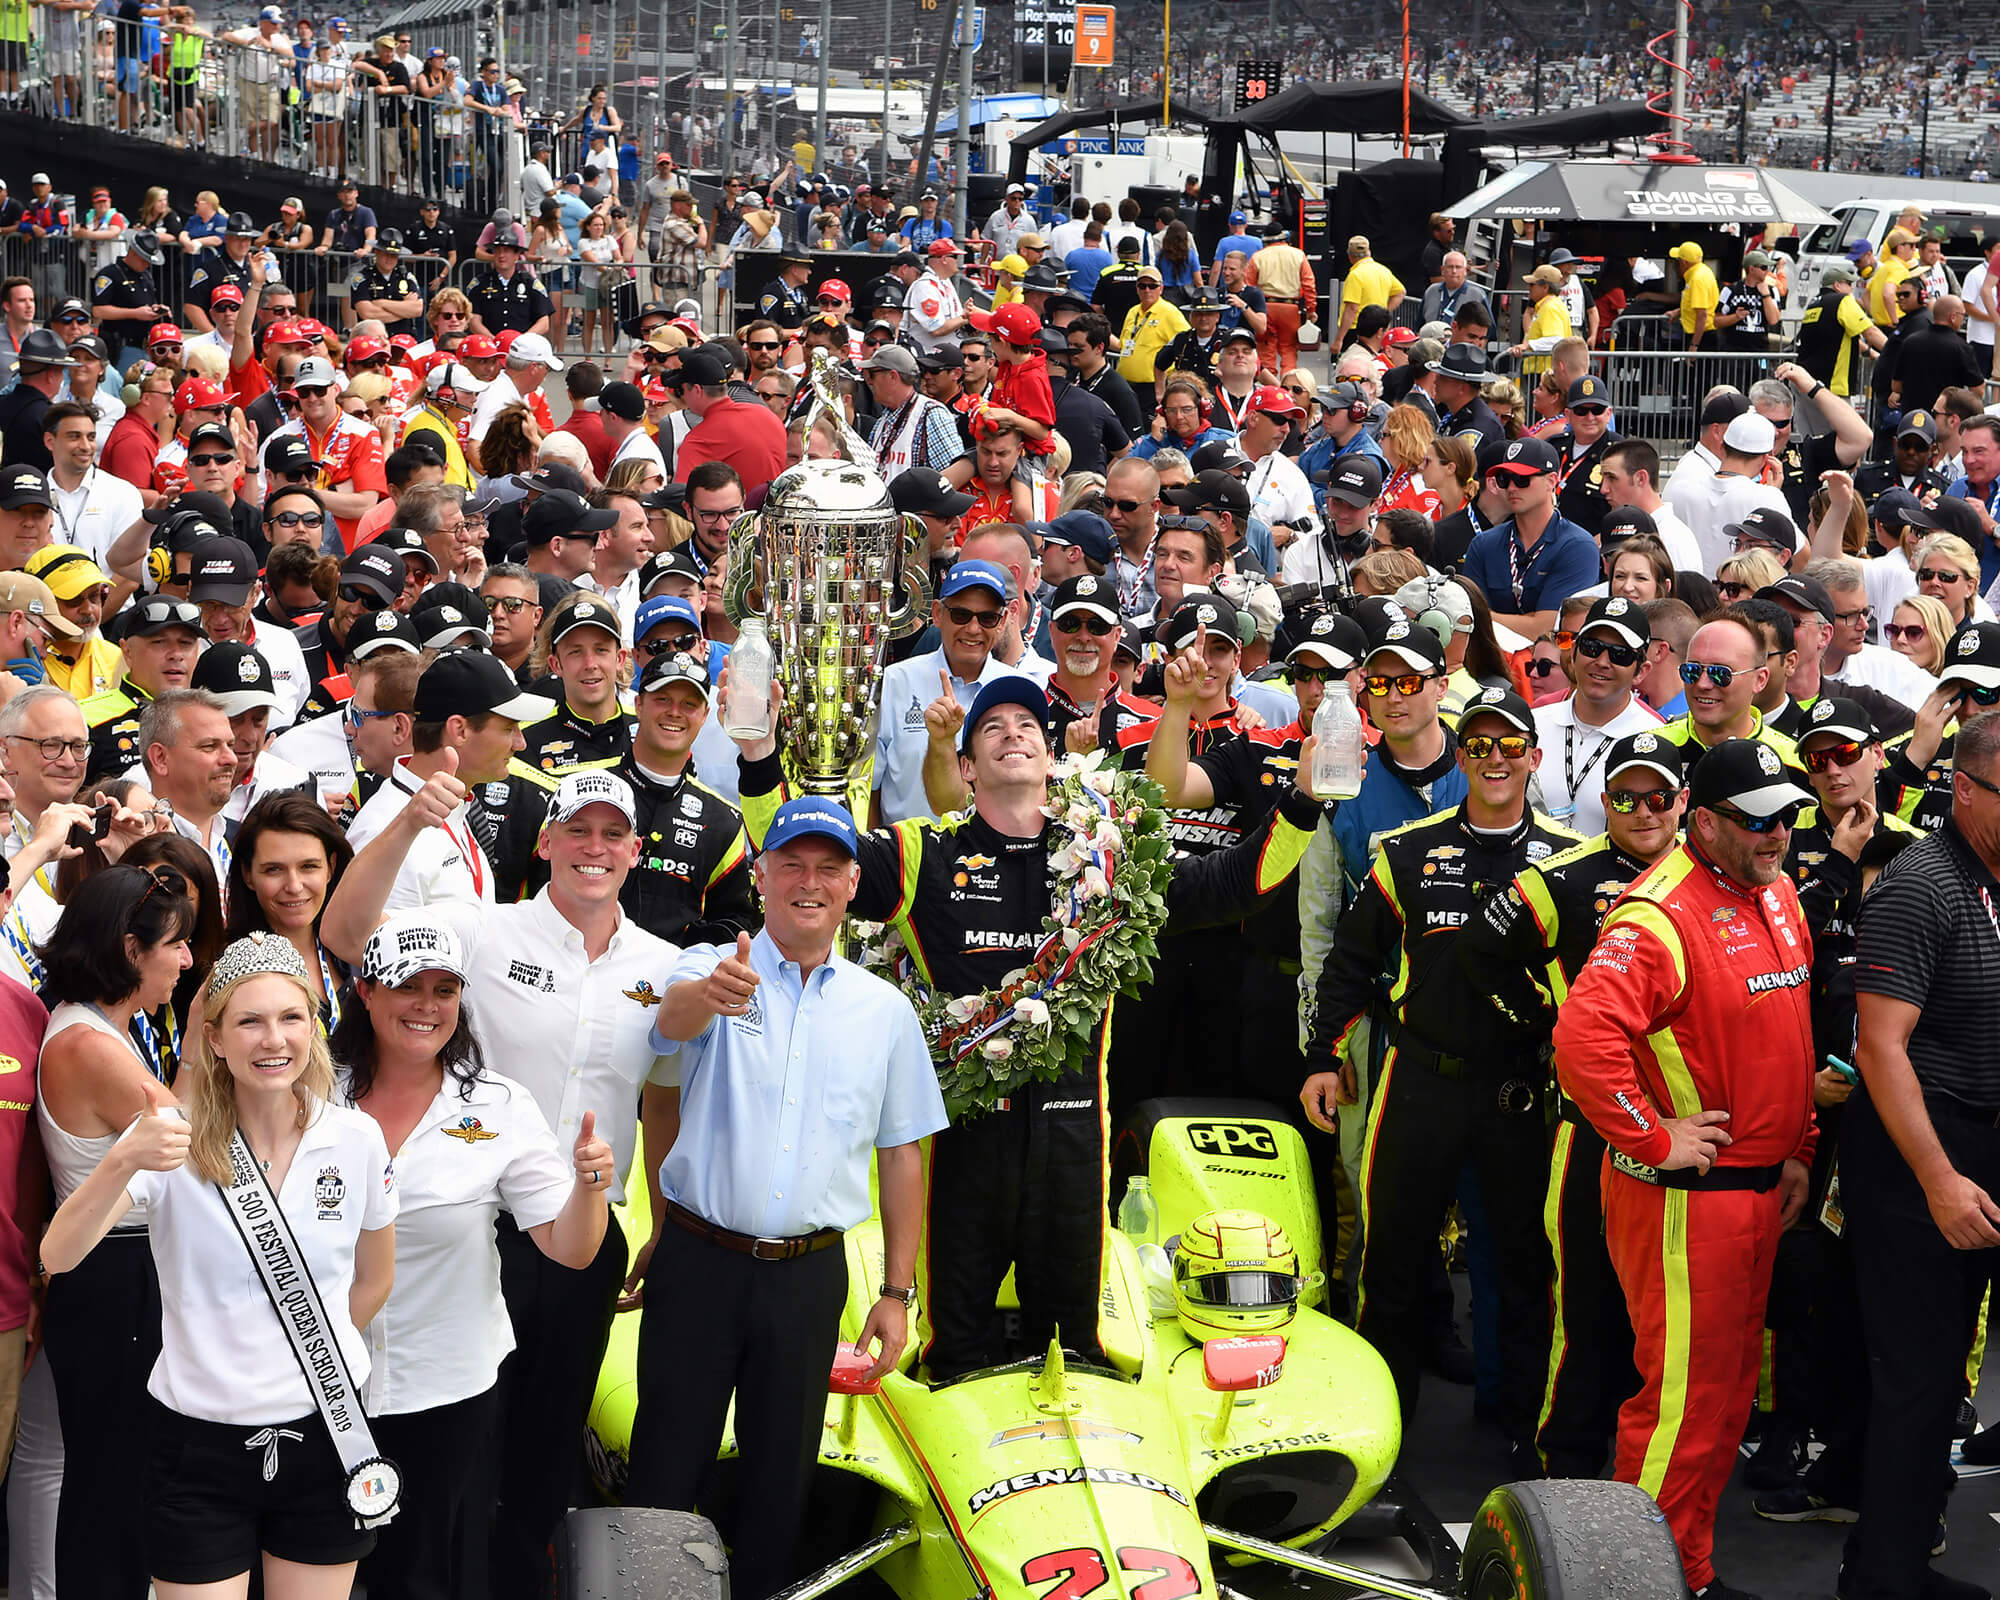 BW-00614 2019 Indy 500 winner Simon Pagenaud